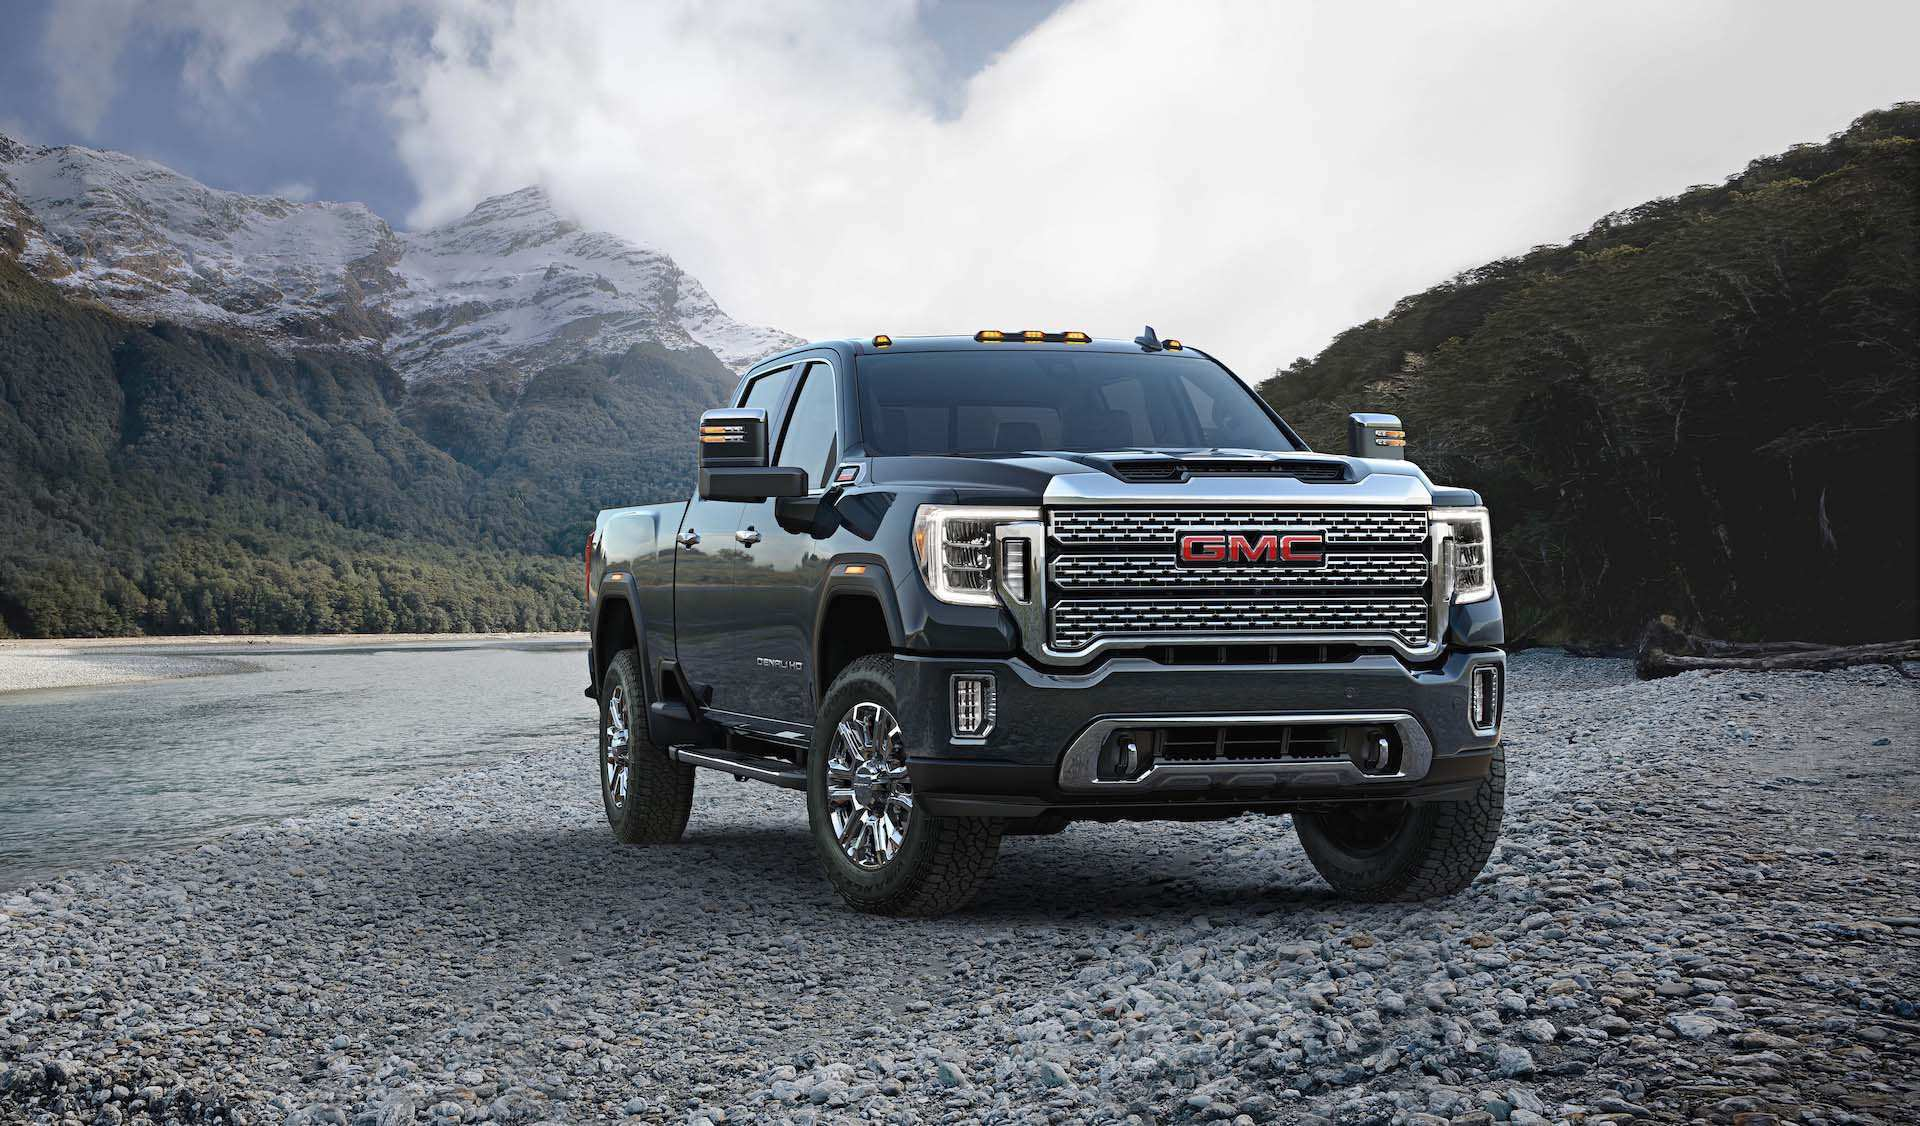 45 New 2020 GMC Sierra Price Spy Shoot